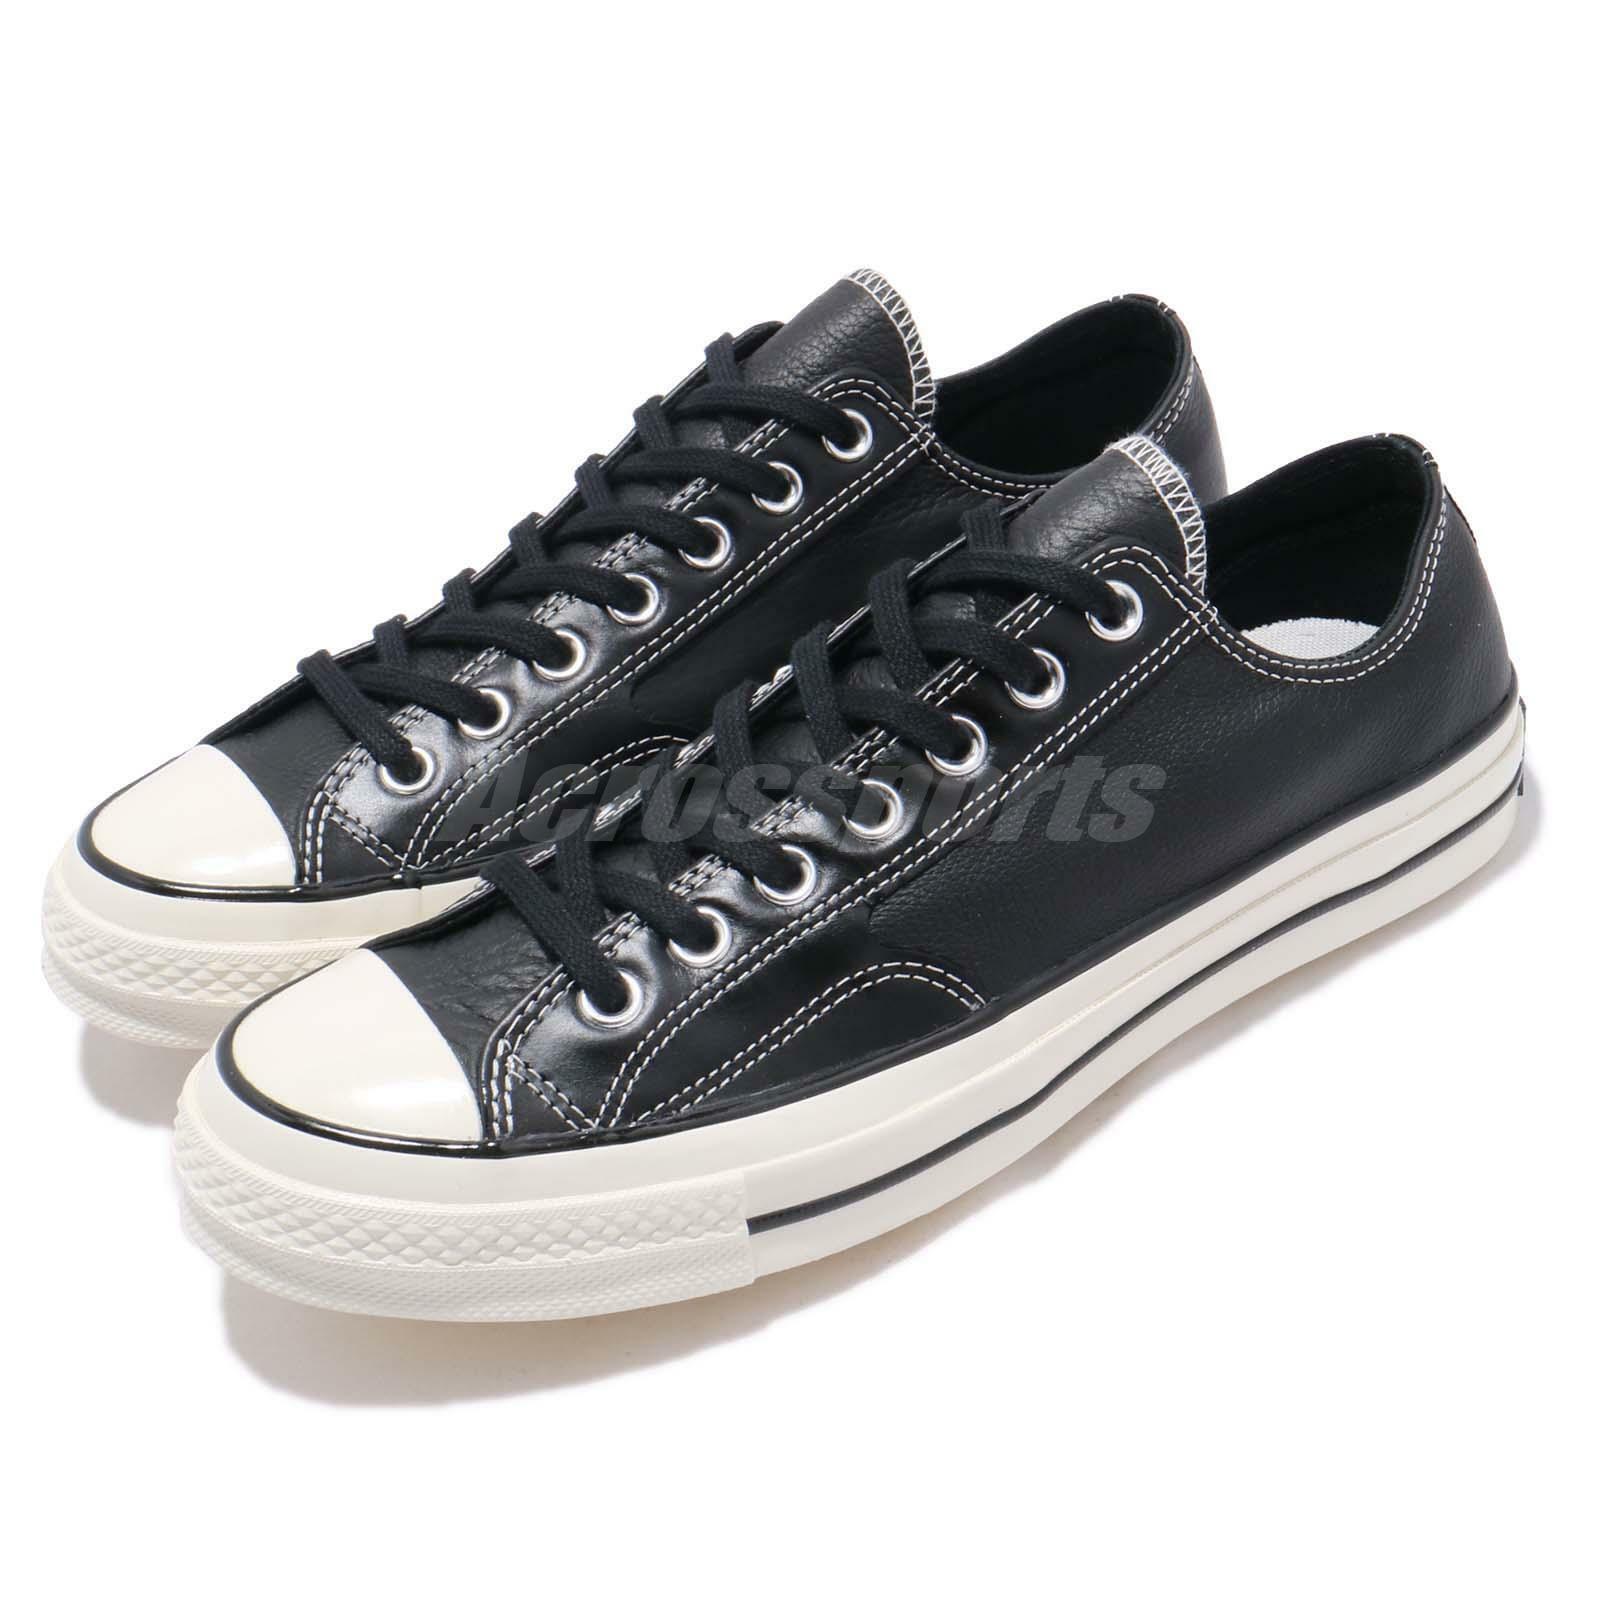 Converse First String Chuck Taylor All Star 70 70 70 OX nero Men donna scarpe 163330C 80058f